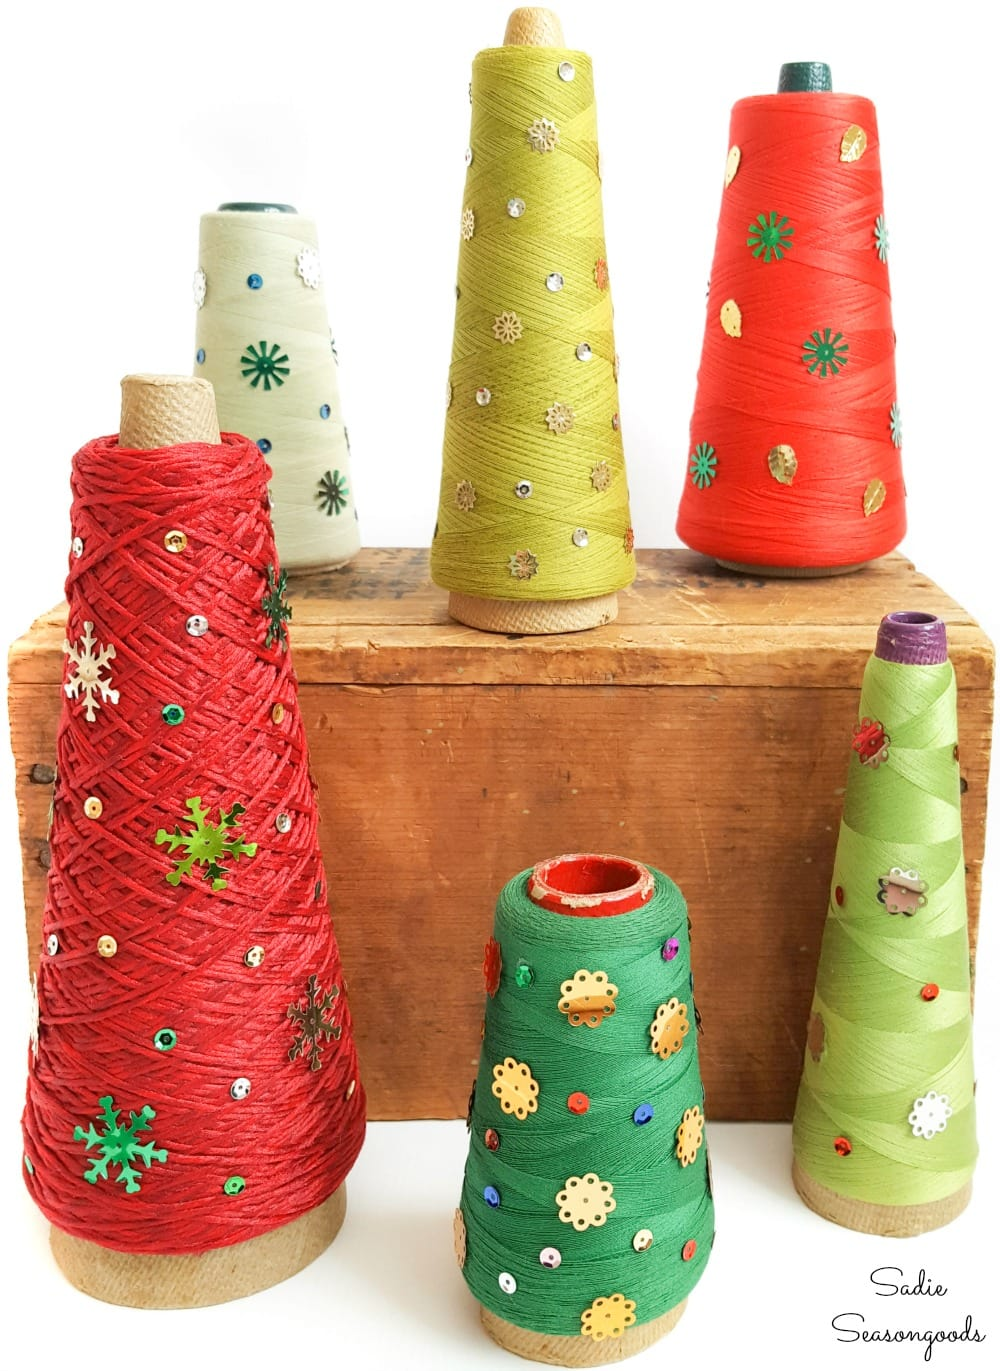 Decorating the tabletop Christmas trees with vintage sequins